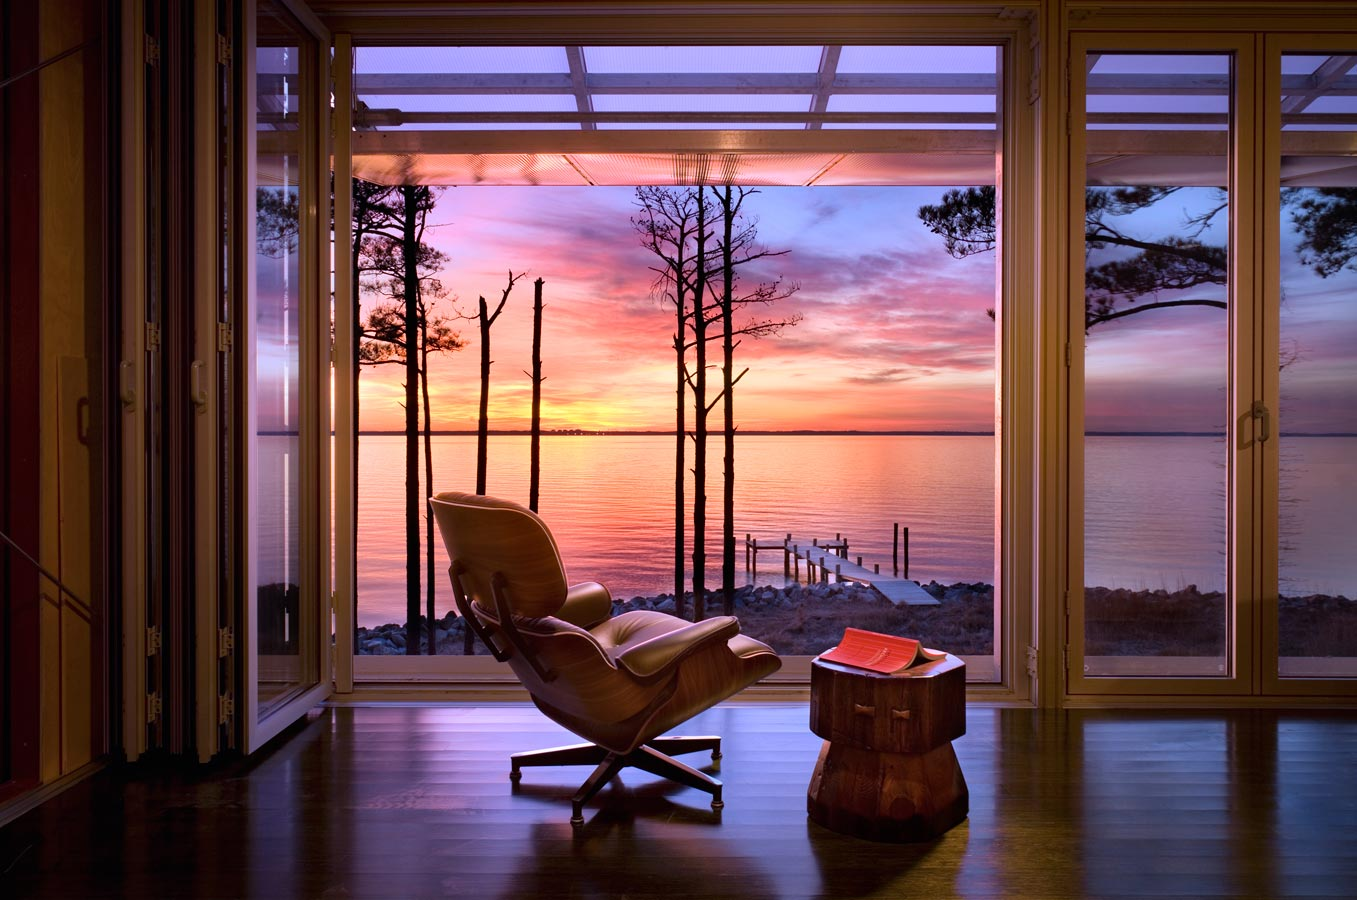 <p>A view from the interior of the house overlooking the Chesapeake Bay at sunset. <br><small>&copy; Peter Aaron/OTTO</small></p>